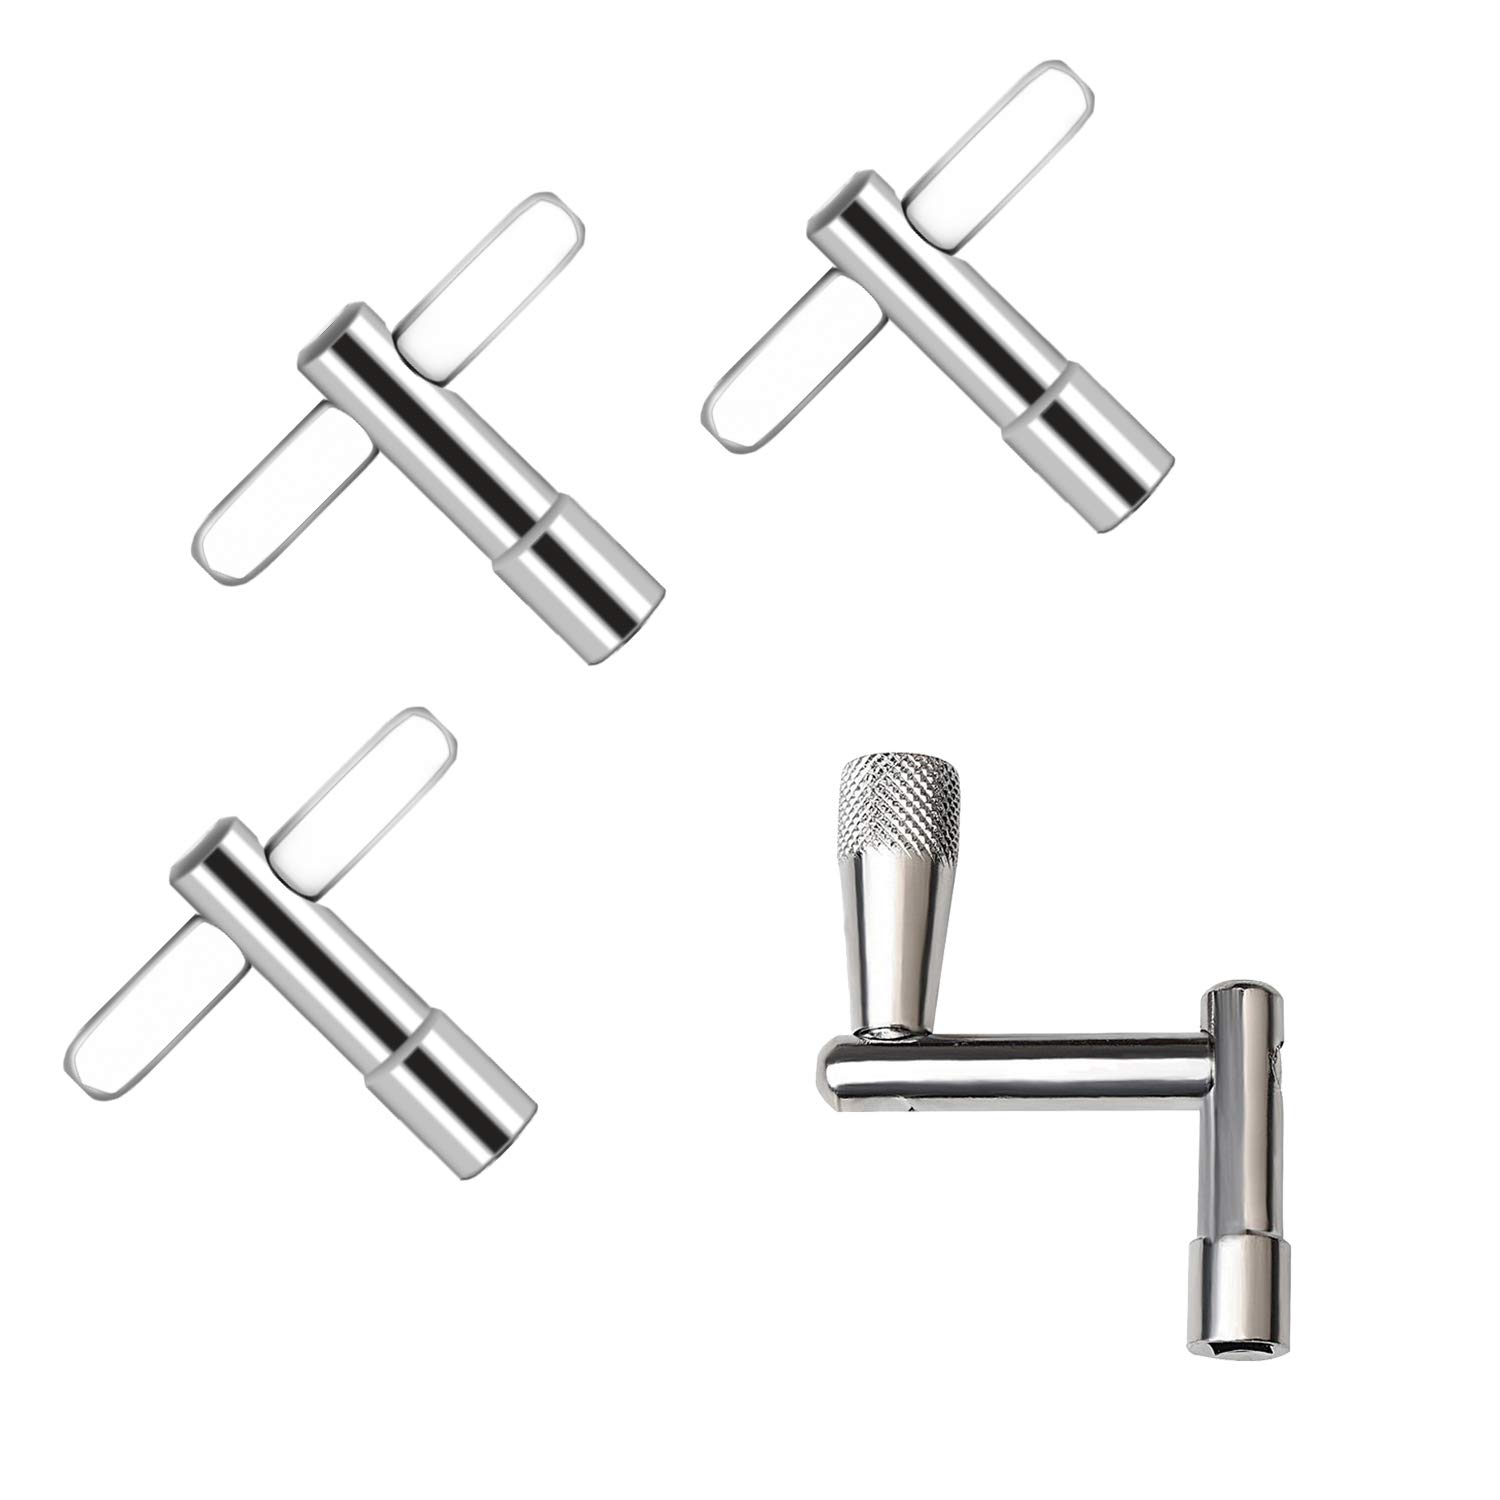 AIEX Drum Key 3-Pack with Continuous Motion Speed Key Universal Drum Tuning Key Drum Key Bit Set Drum Tension Key for Standard Drum